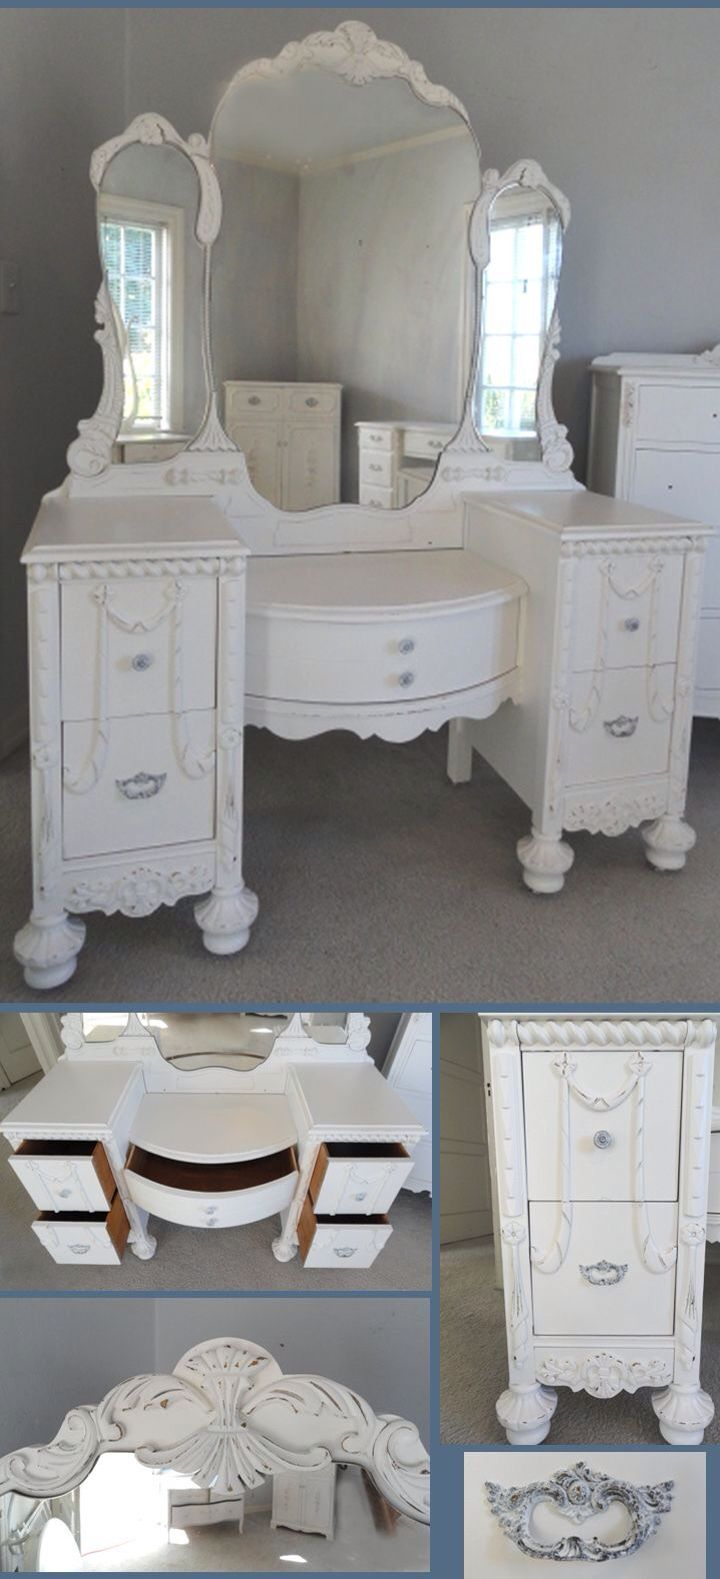 soar vanity bathrooms antique home for brilliant cabinets sale of chic victorian bathroom